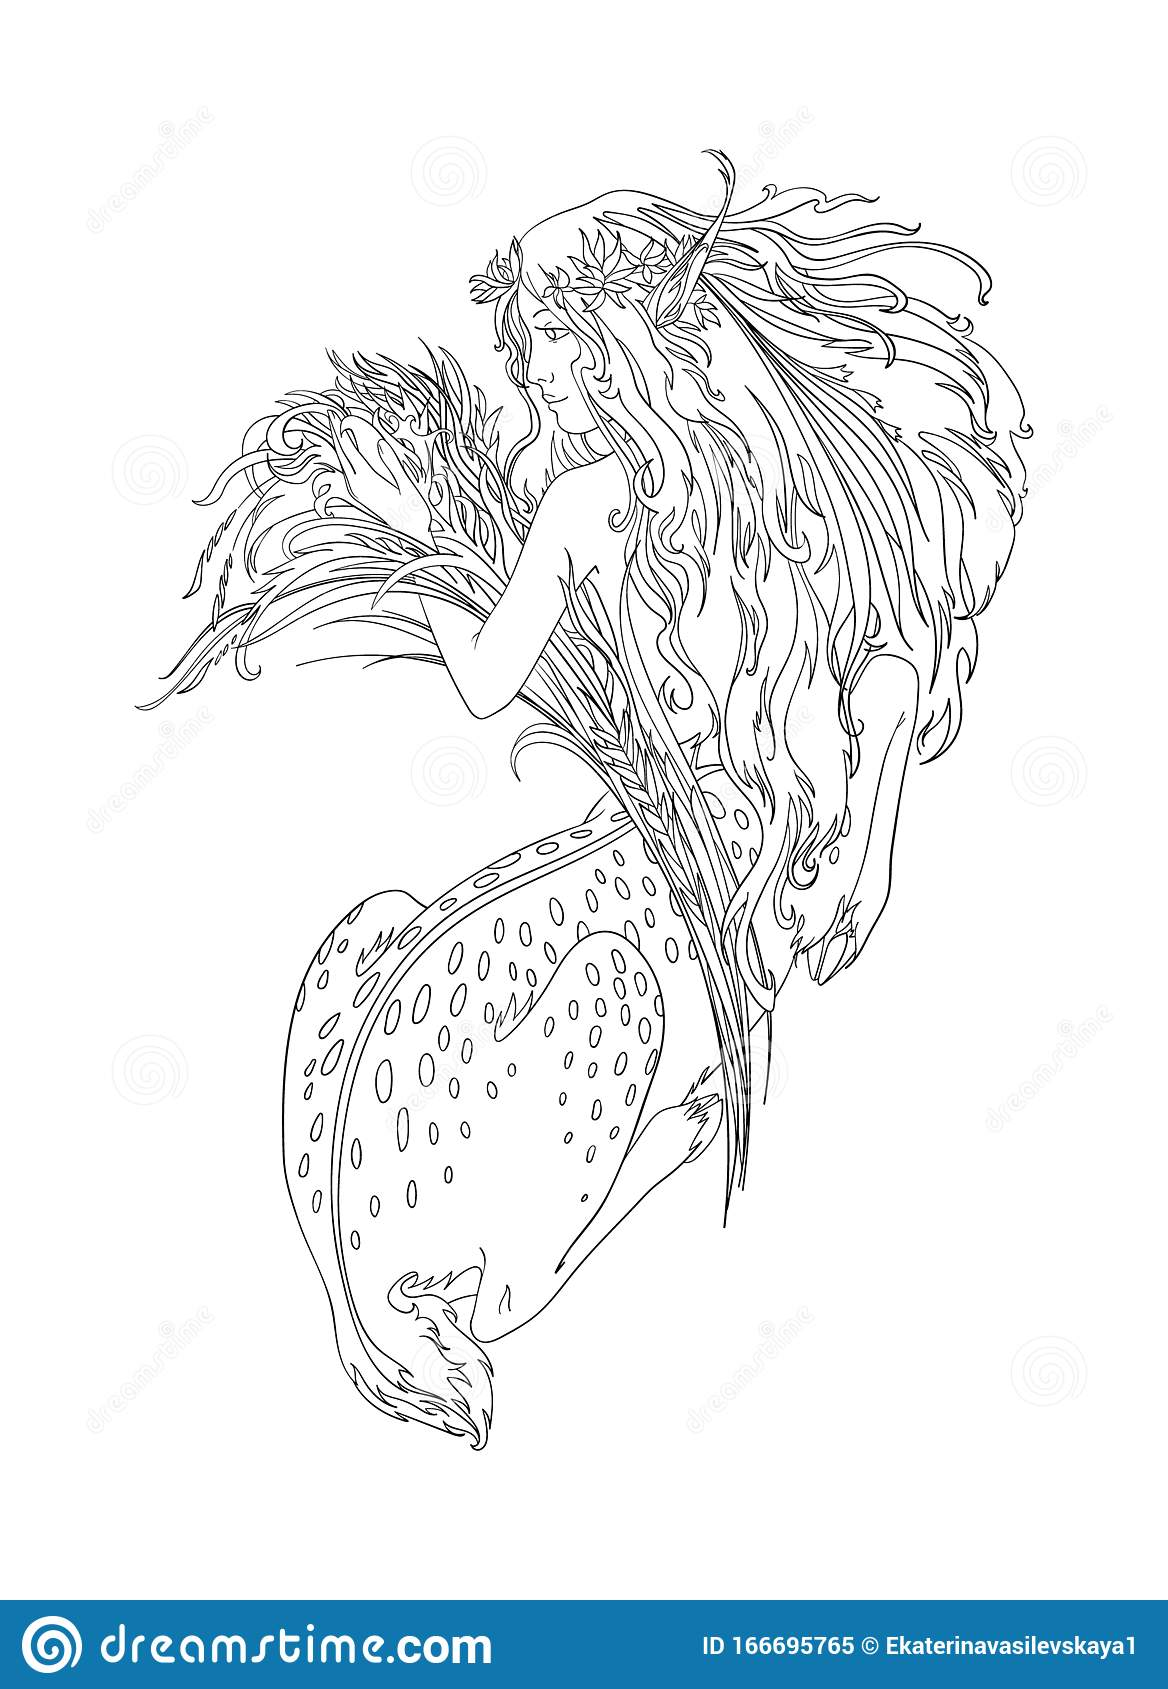 GREEK FABULOUS CREATURES AND MONSTERS coloring pages - Coloring ... | 1689x1168